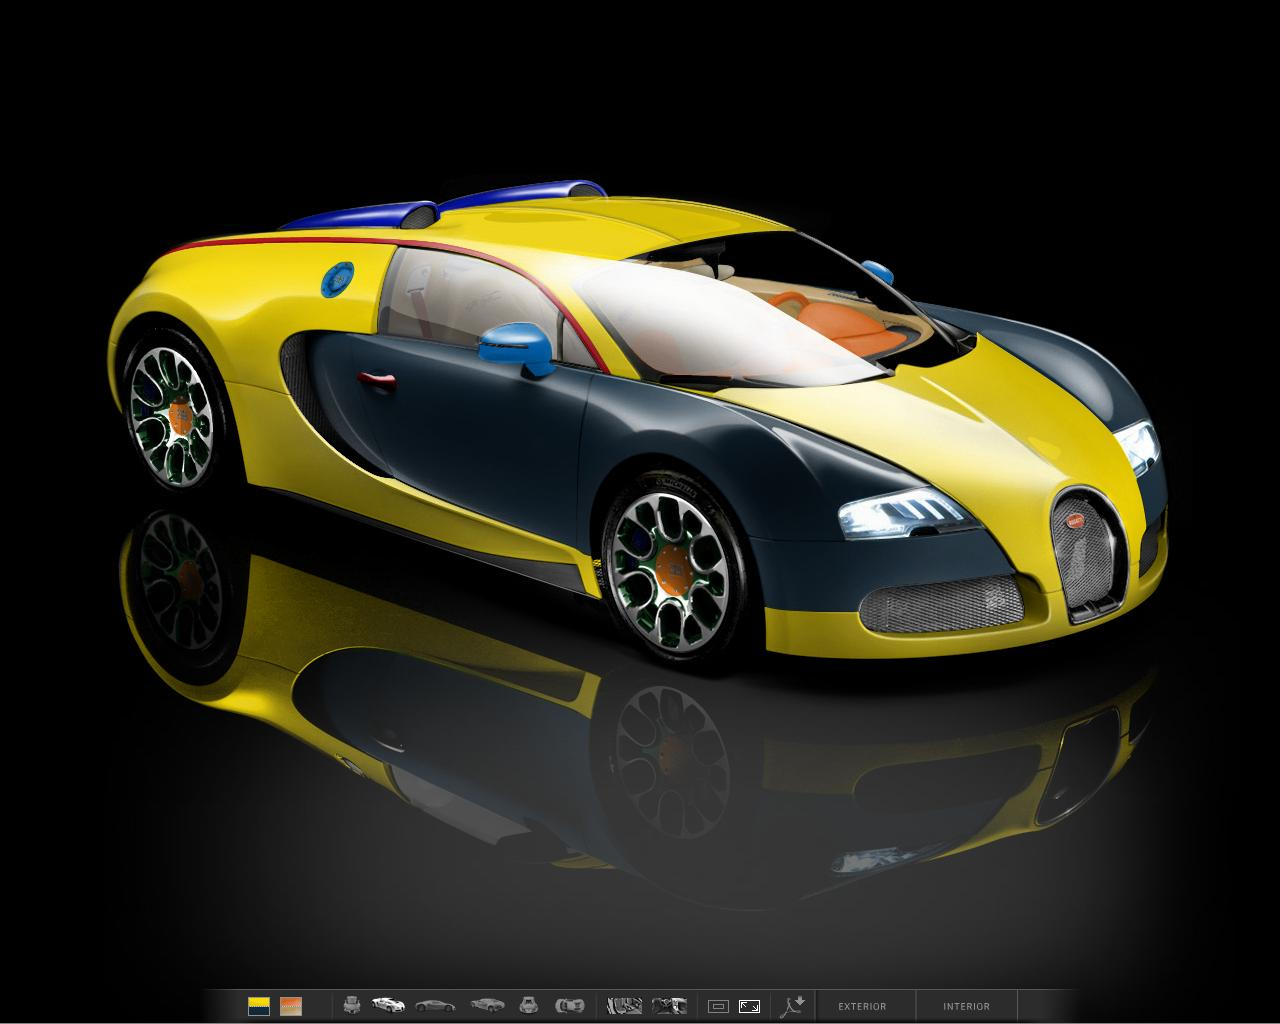 bugatti veyron un monstre page 15 auto titre. Black Bedroom Furniture Sets. Home Design Ideas